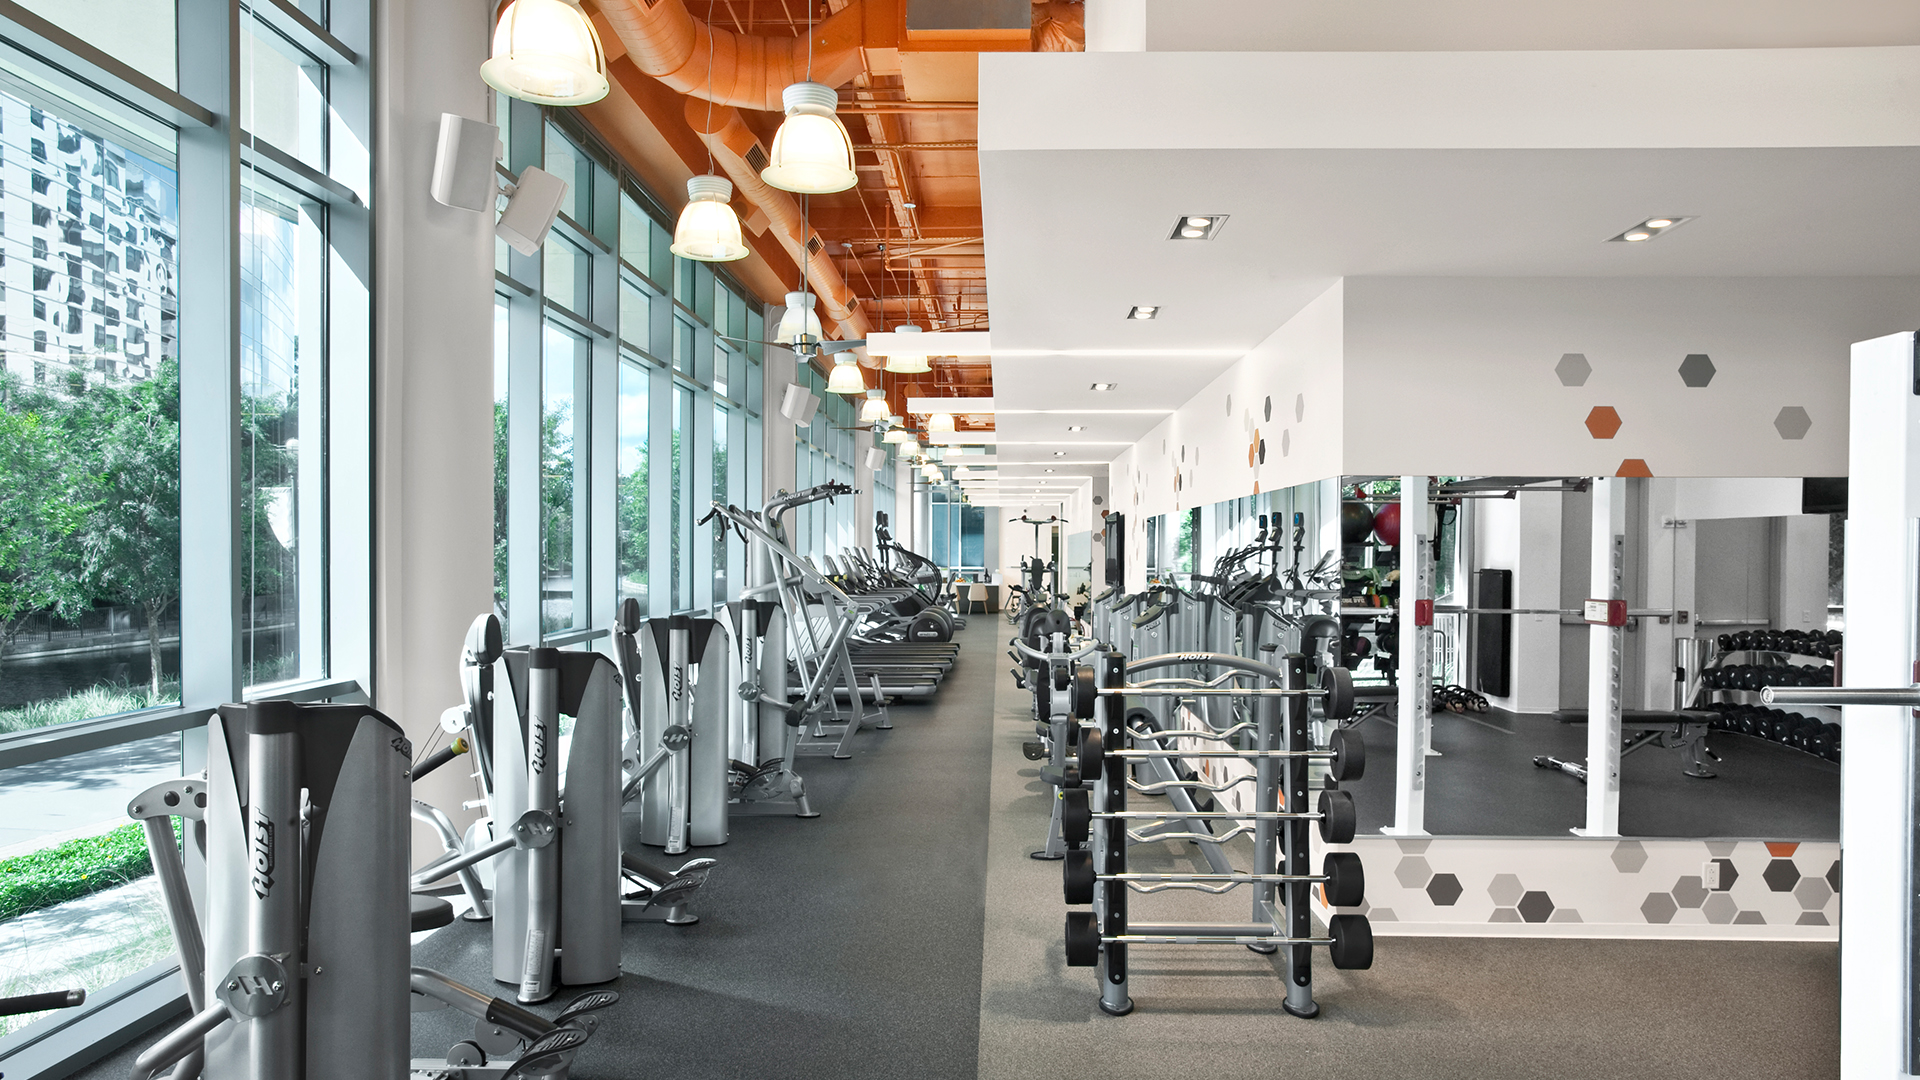 Corporate Interior Design Fitness Center Newfield Fitness Center Workout Area Natural Light